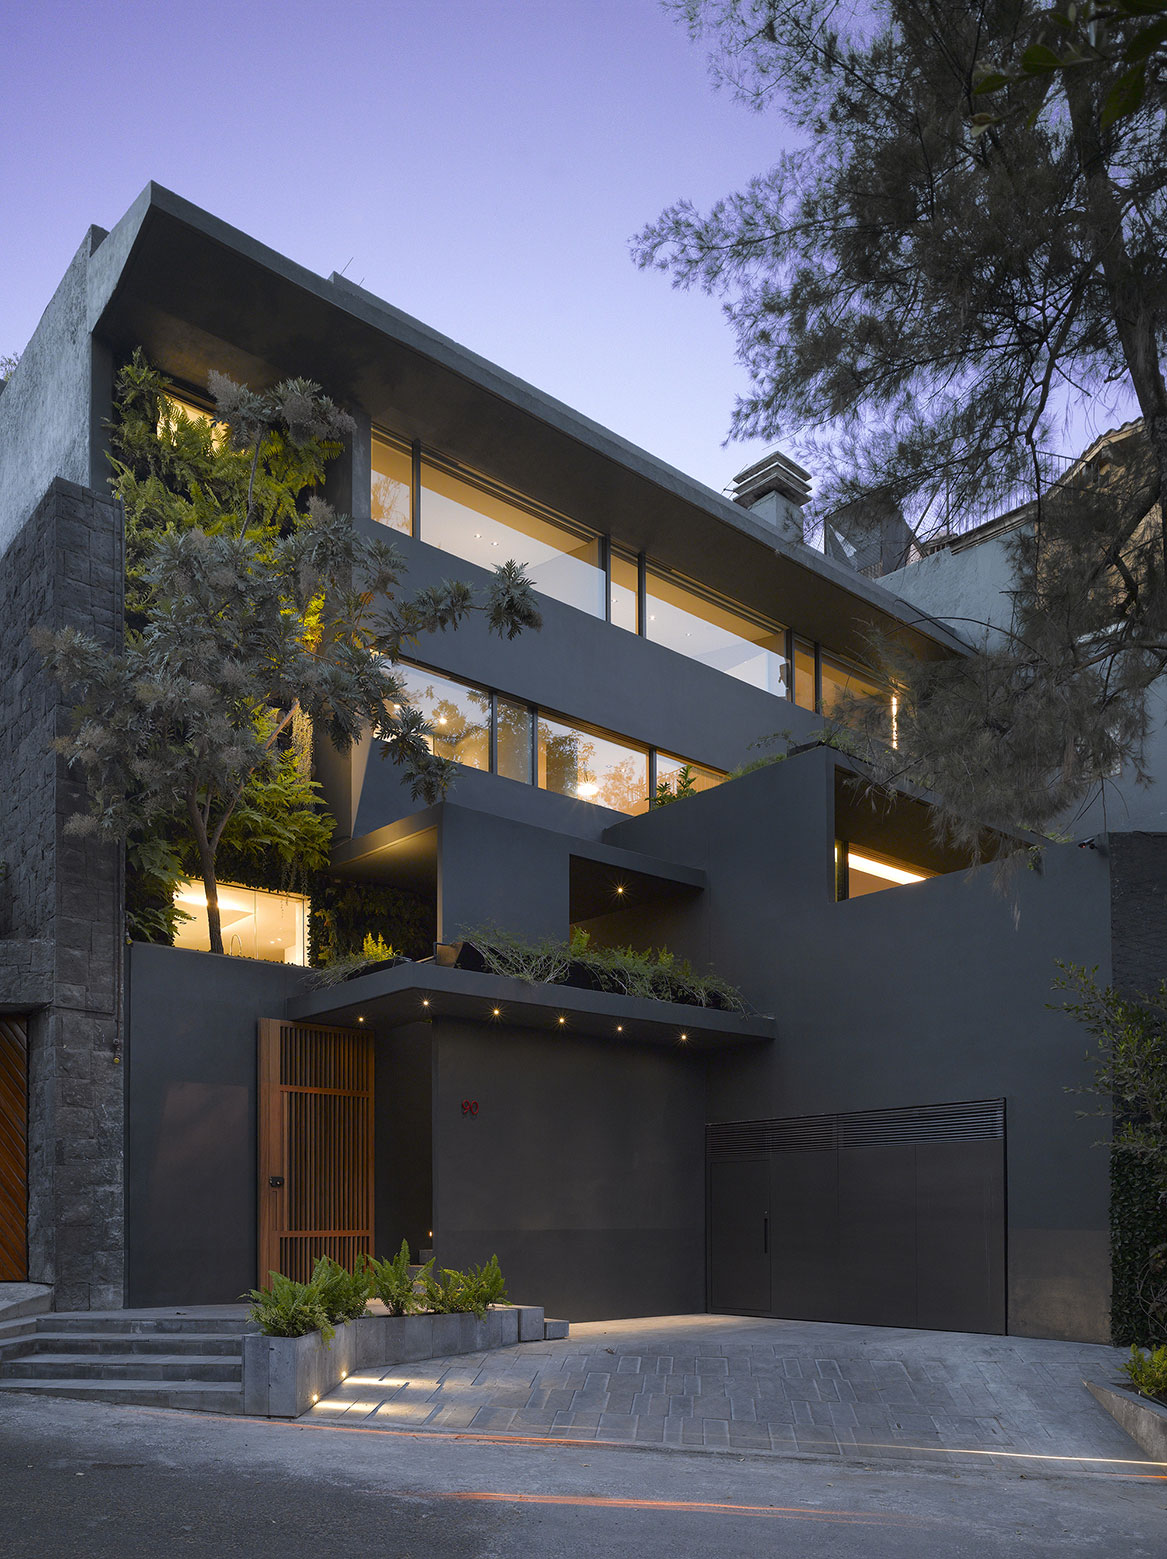 Modern Barrancas House in Mexico City by EZEQUIELFARCA architecture and design-23